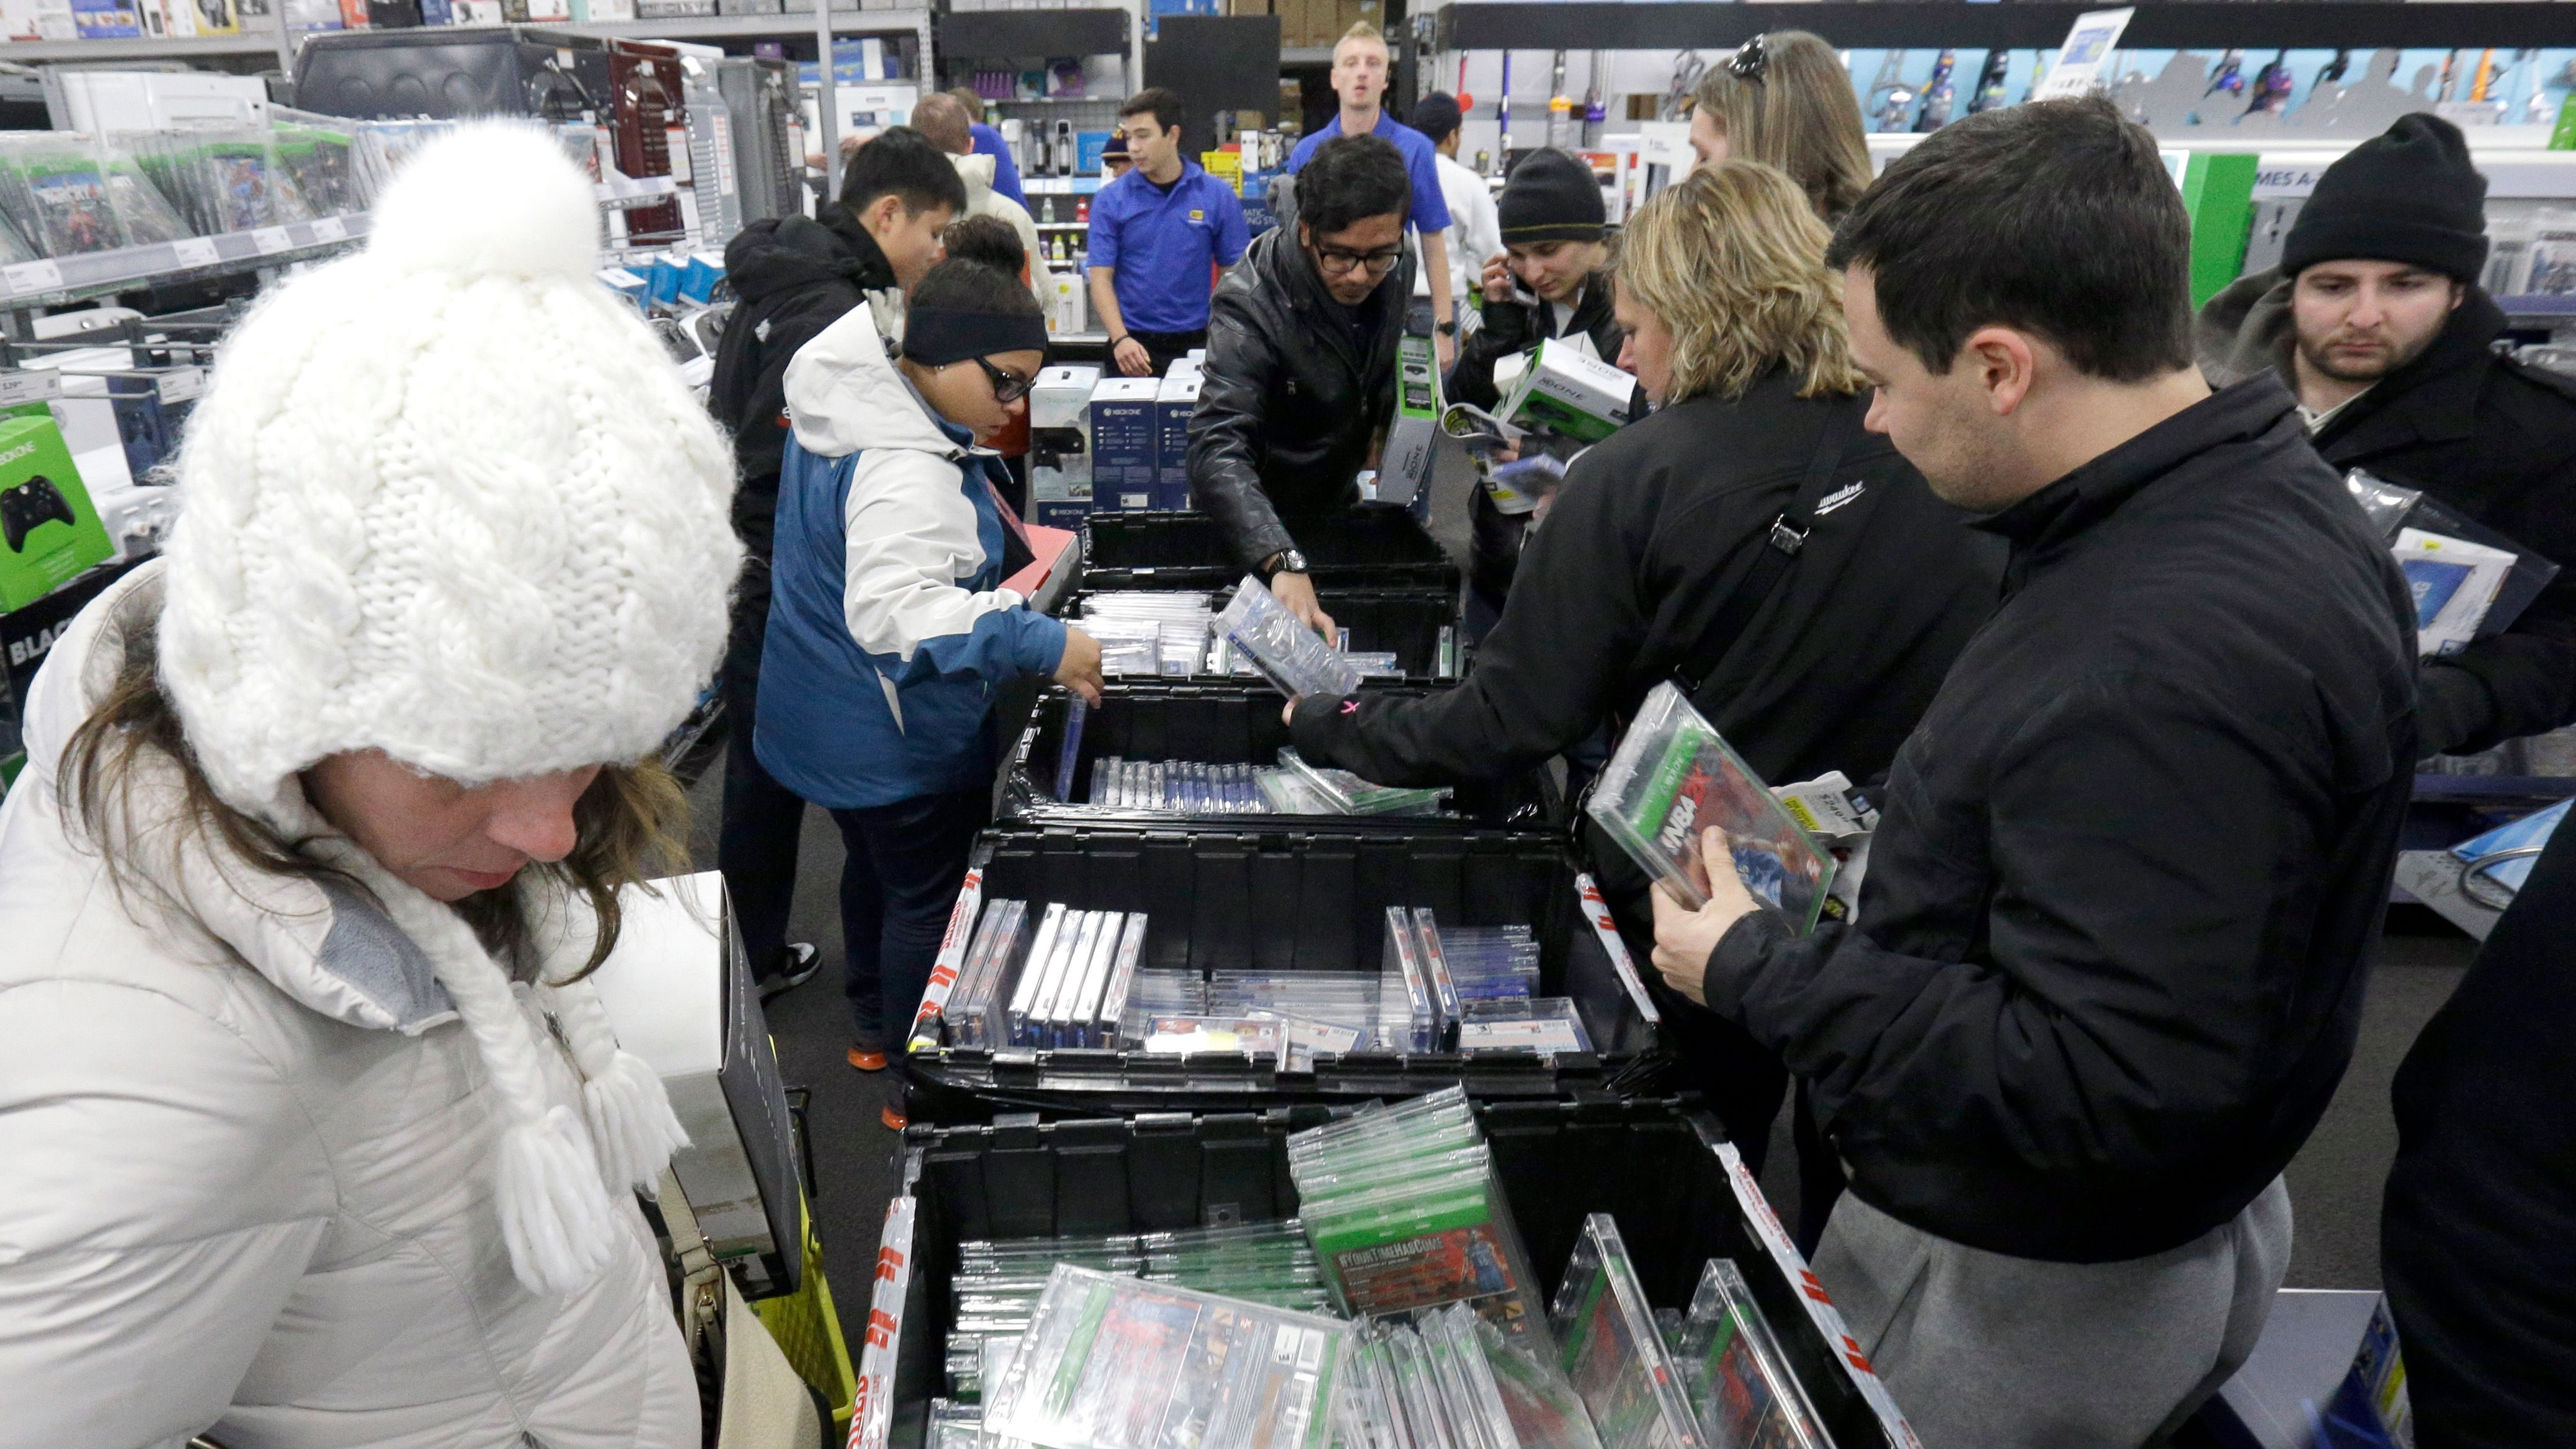 Shoppers sift through video games at a Best Buy on Thursday, Nov. 27, 2014, in Northbrook, Ill. Early-bird shoppers headed to stores on Thanksgiving in what's becoming a new holiday tradition. (AP Photo/Nam Y. Huh)